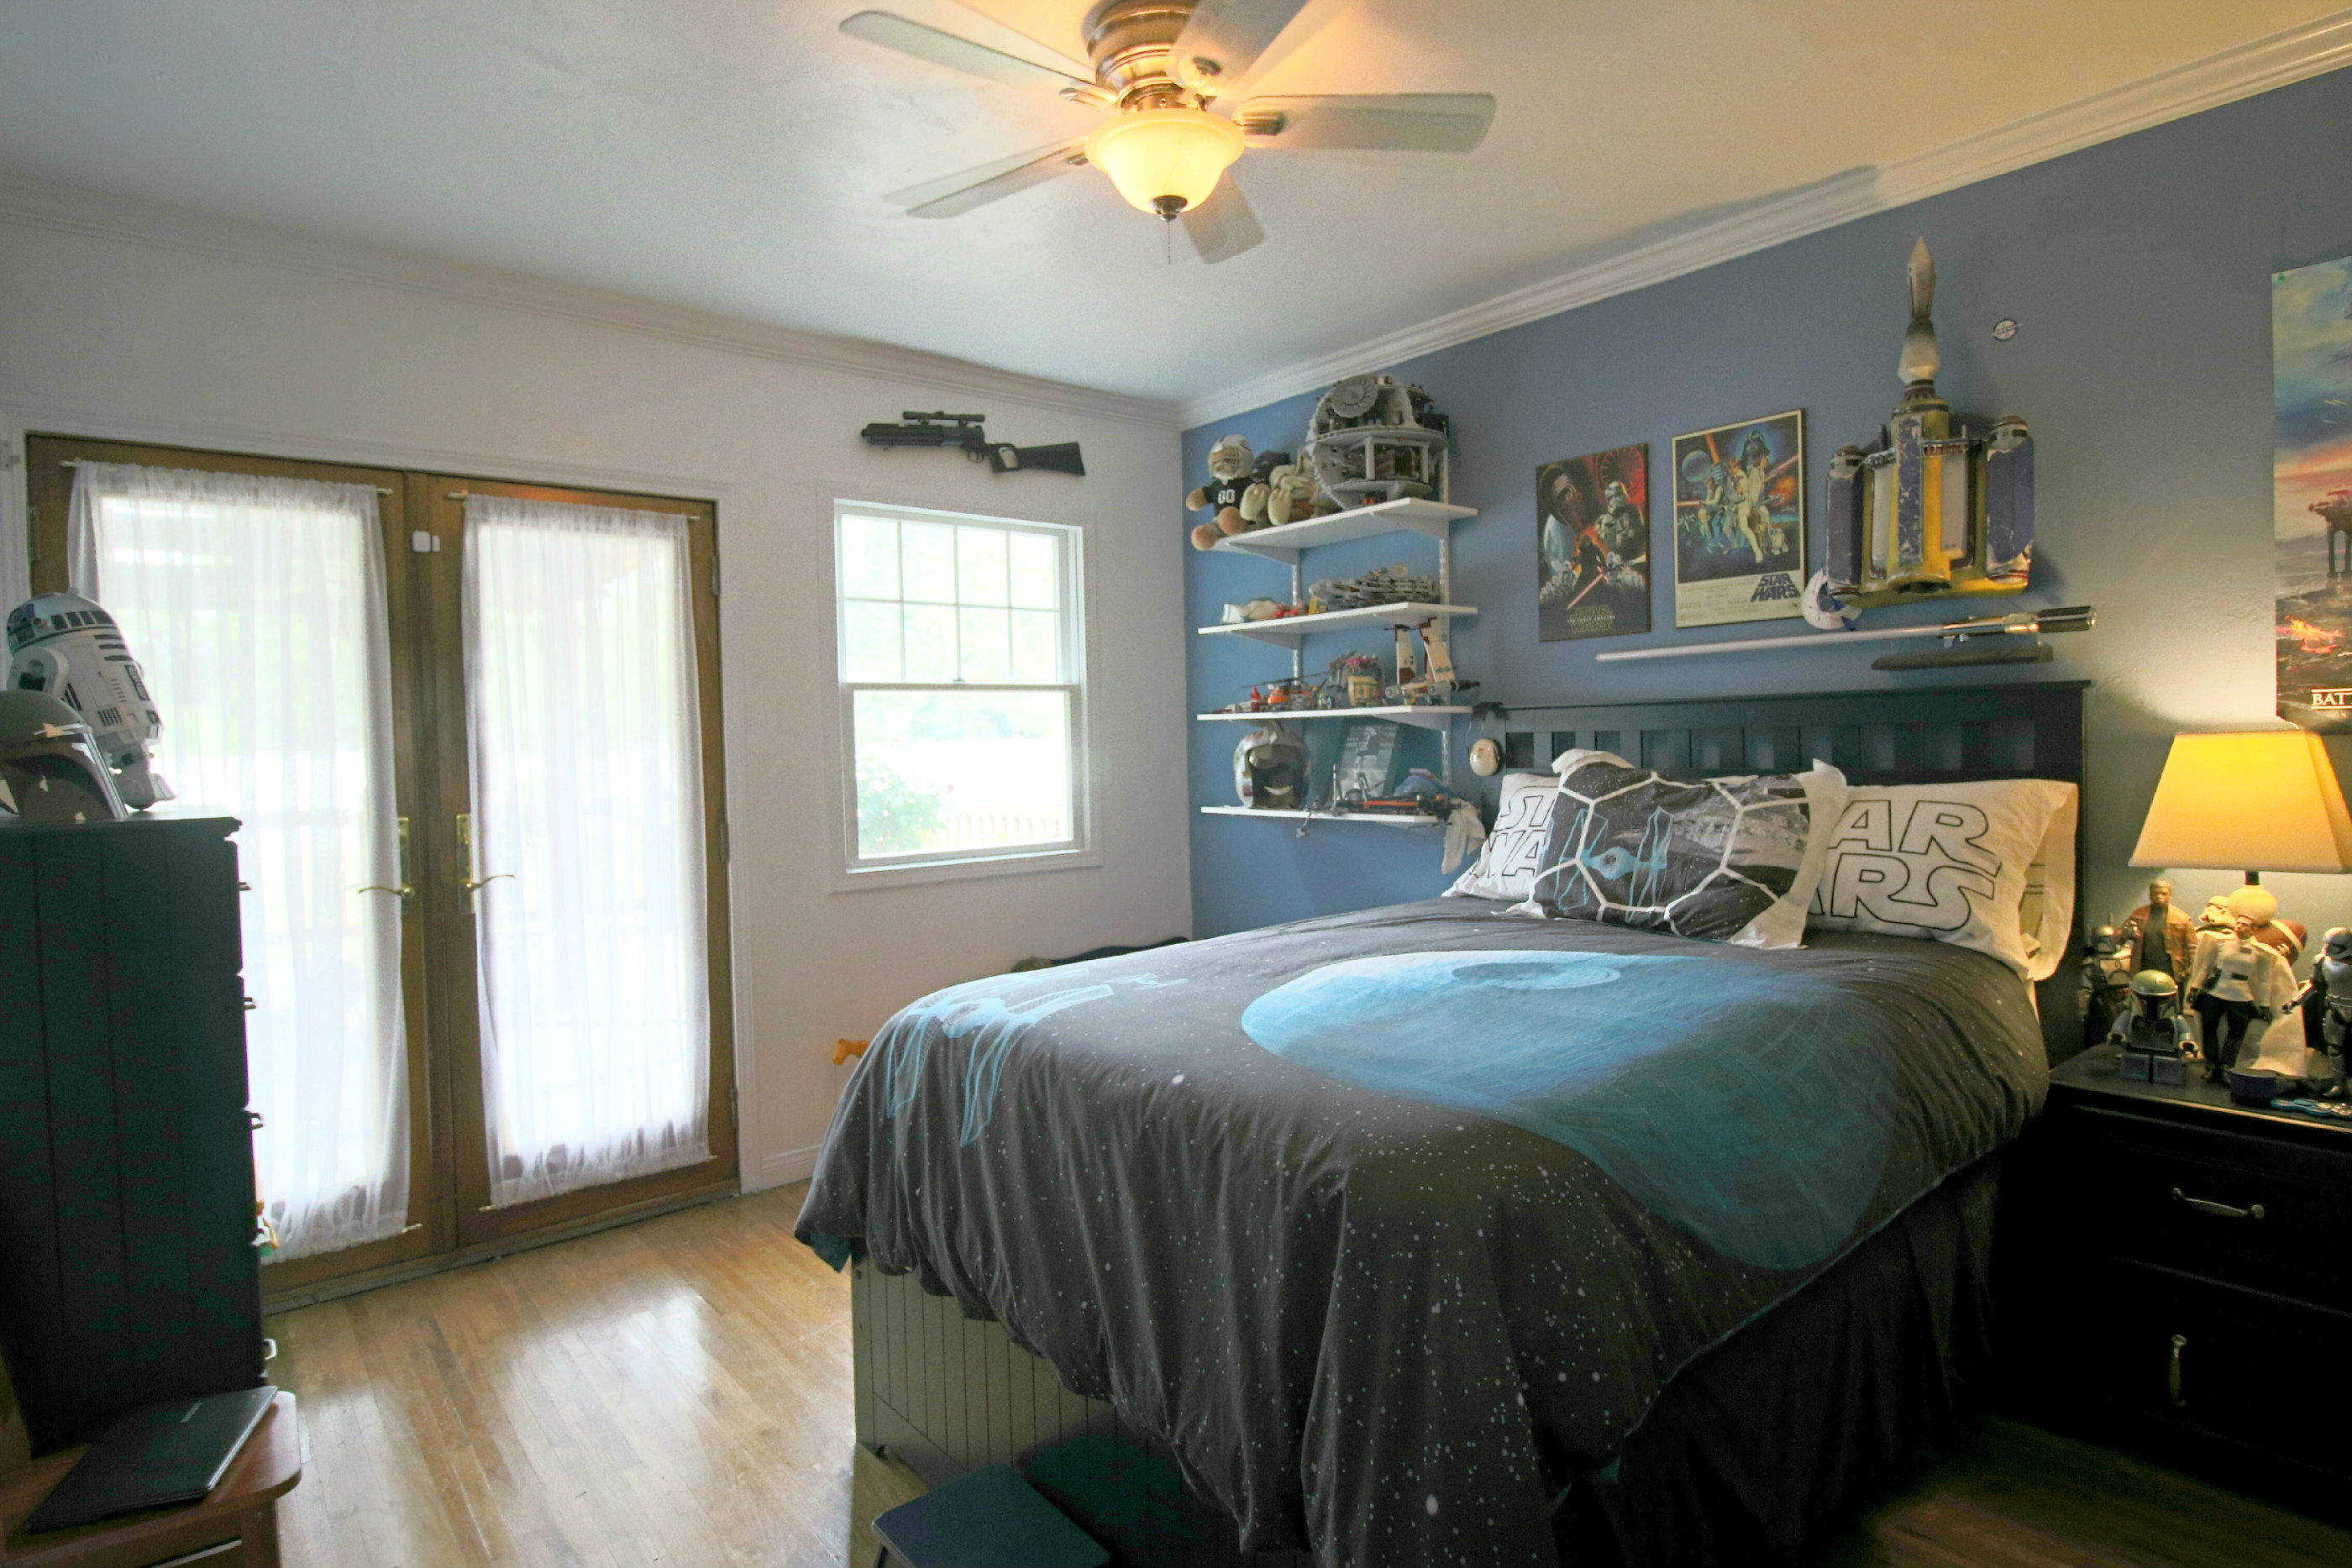 Third bedroom with refinished original hardwood floors and double French doors leading to the back deck.